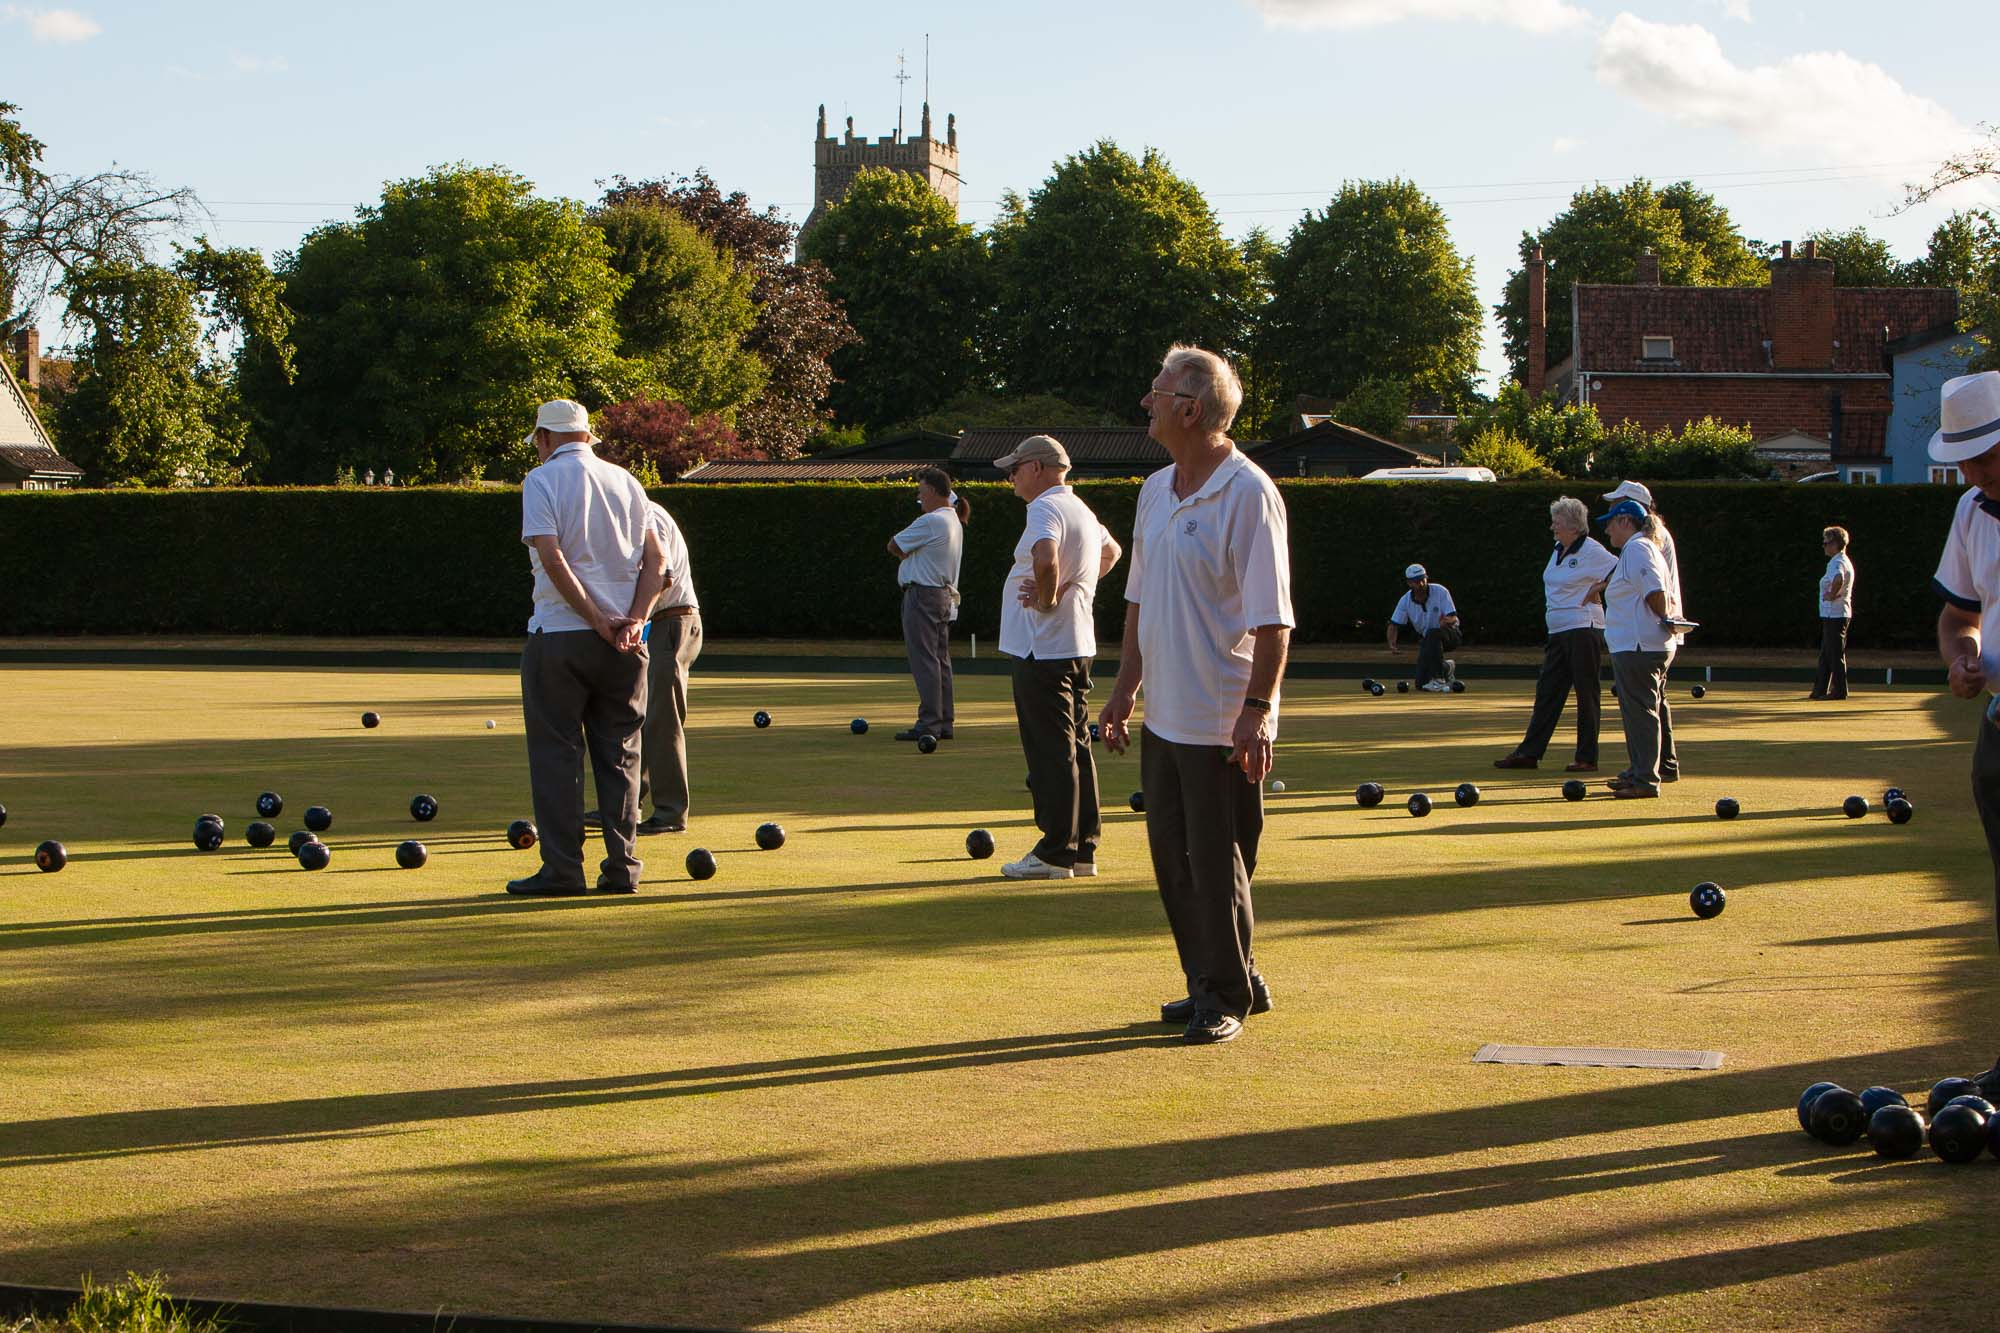 Walsham le Willows Bowls Club on a summer evening